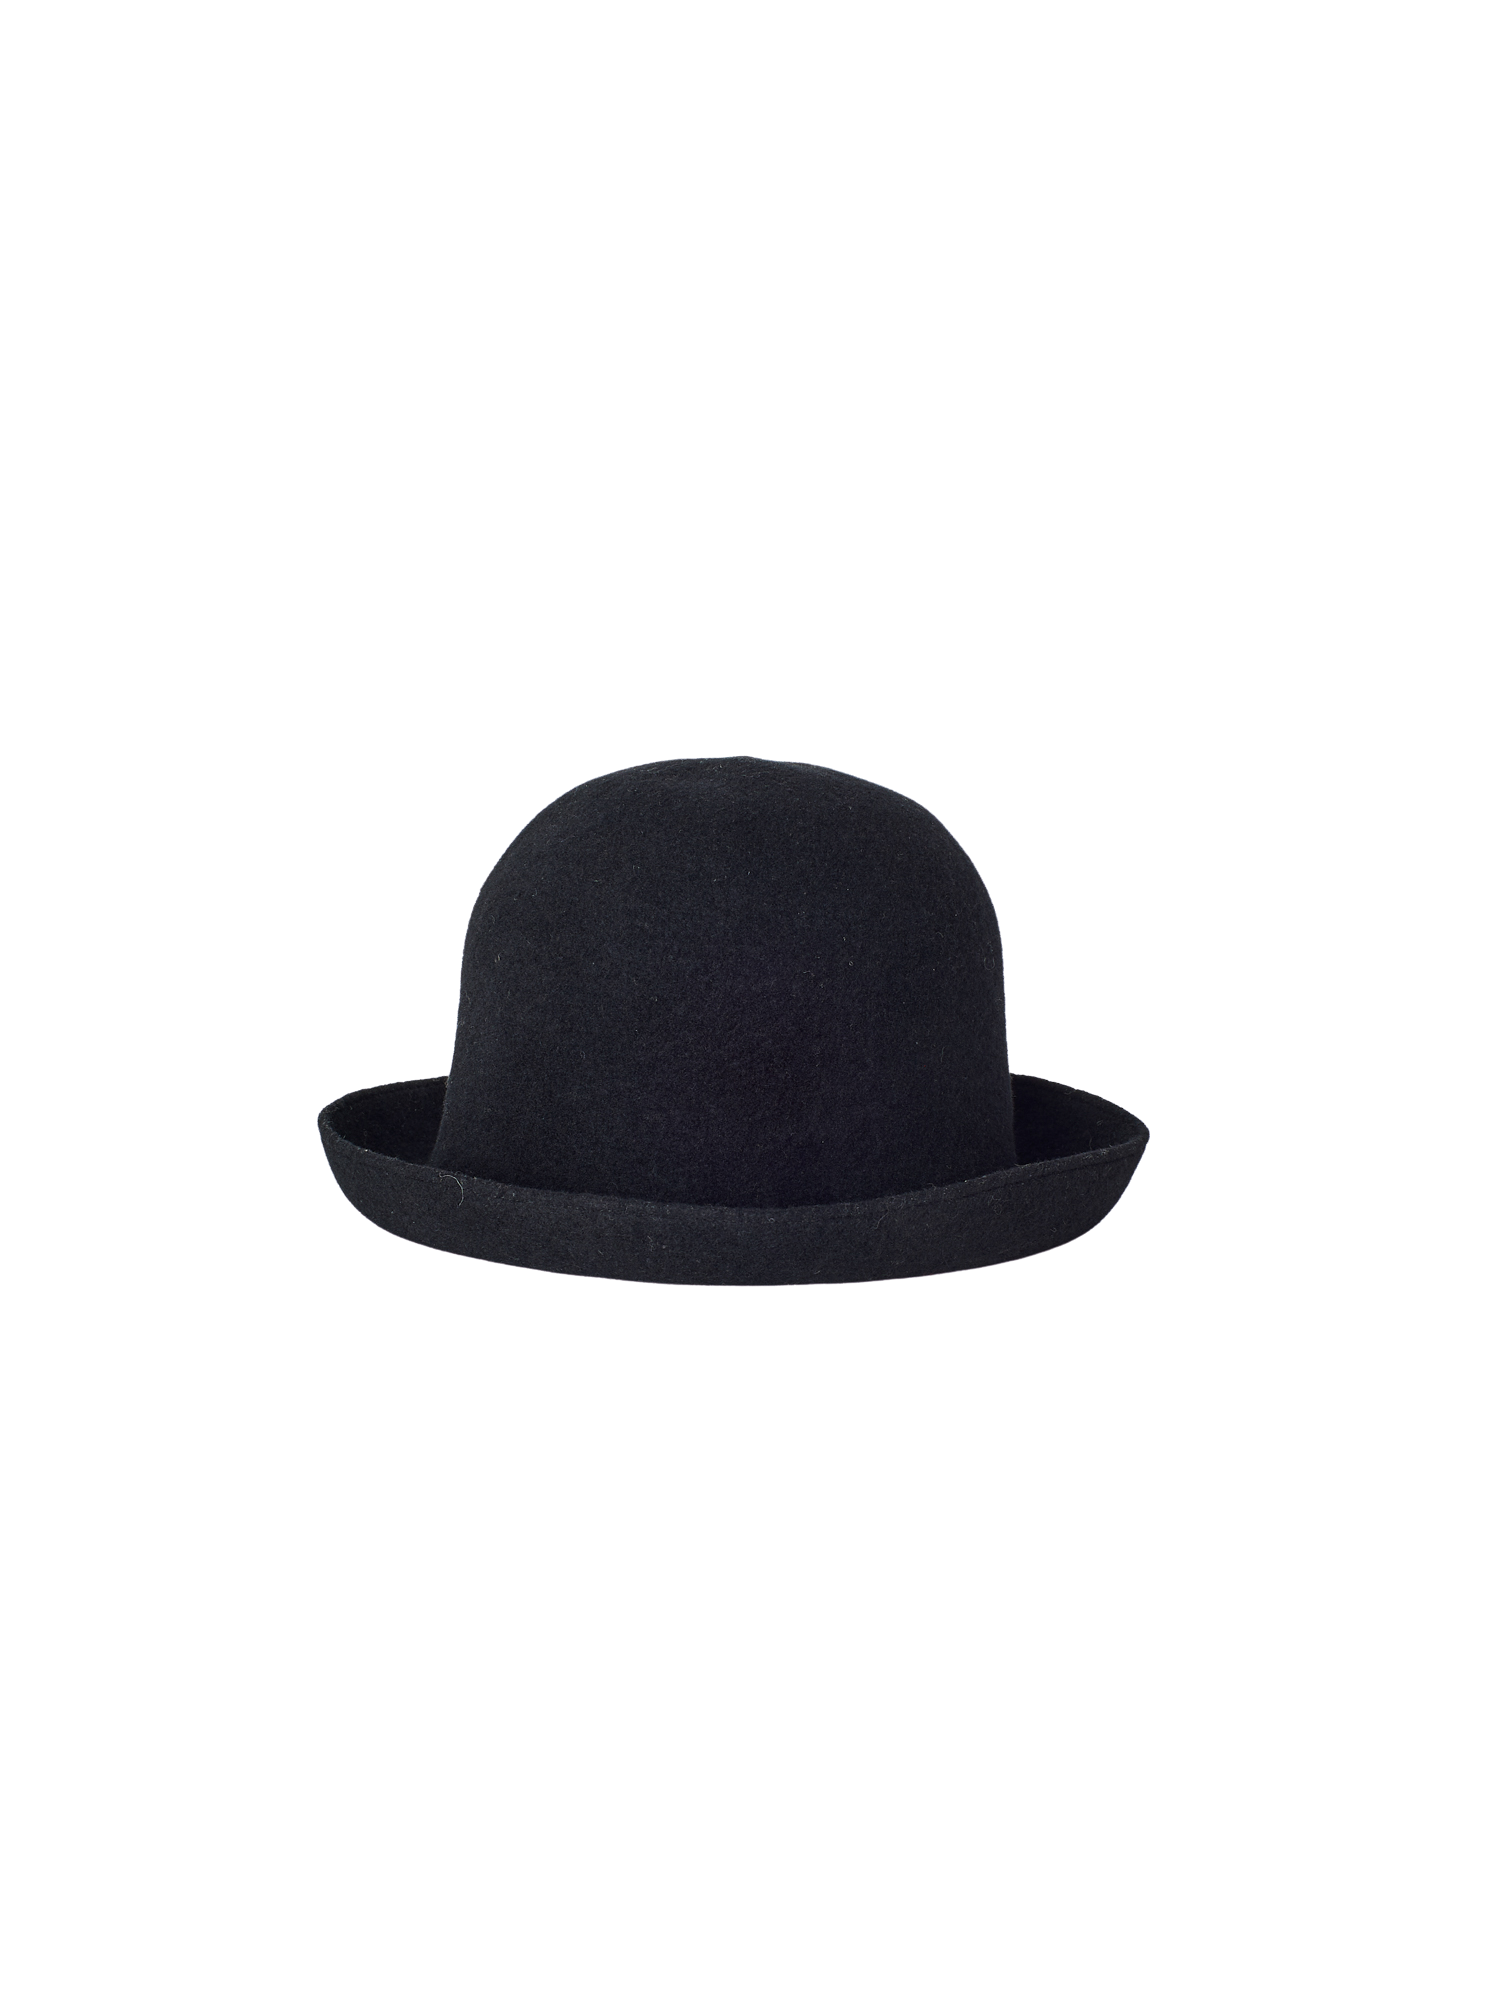 black lambs wool seamless wide rim bell hat